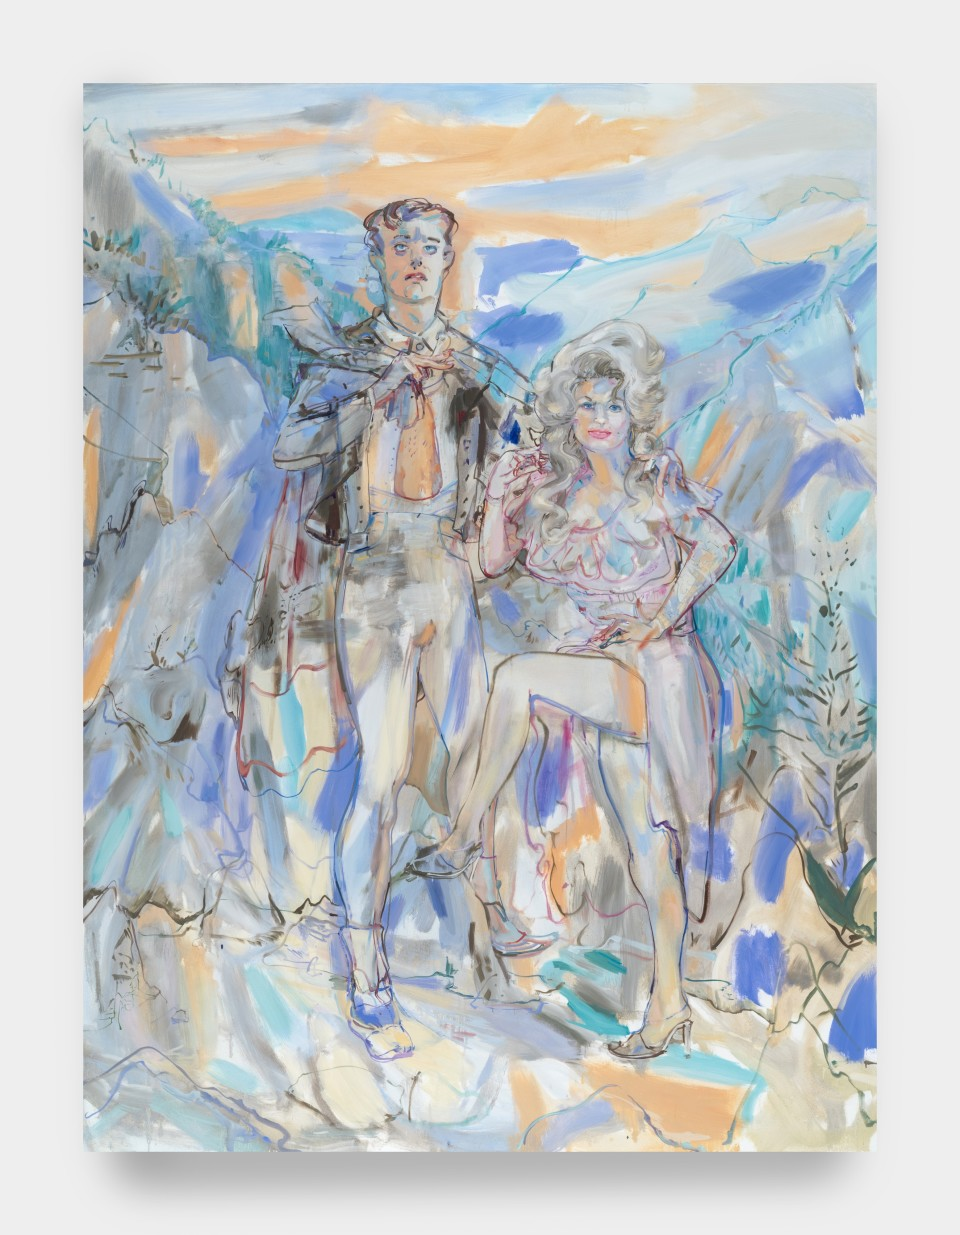 Image: Angela Dufresne  Dolly Parton and Lord Byron, 2020  signed and dated verso  oil on canvas  96 x 72 inches (243.8 x 182.9 cm)